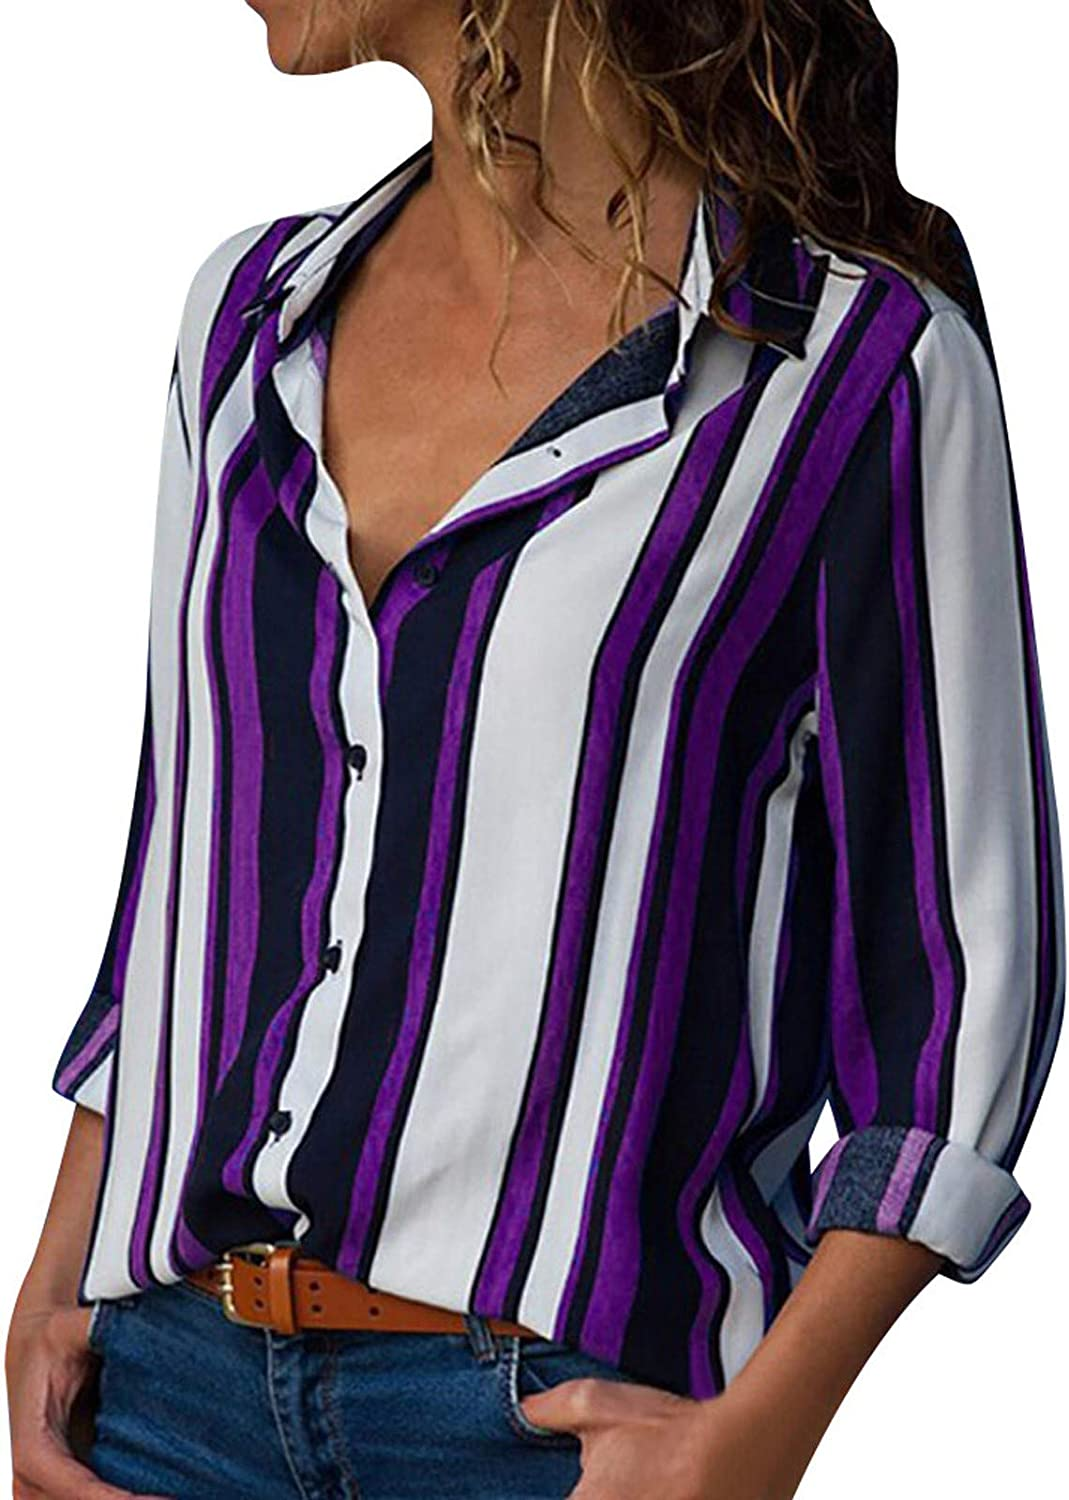 Women Striped V Neck Off Shoulder Bell Sleeve Tie Knot Casual Blouse Shirts Top